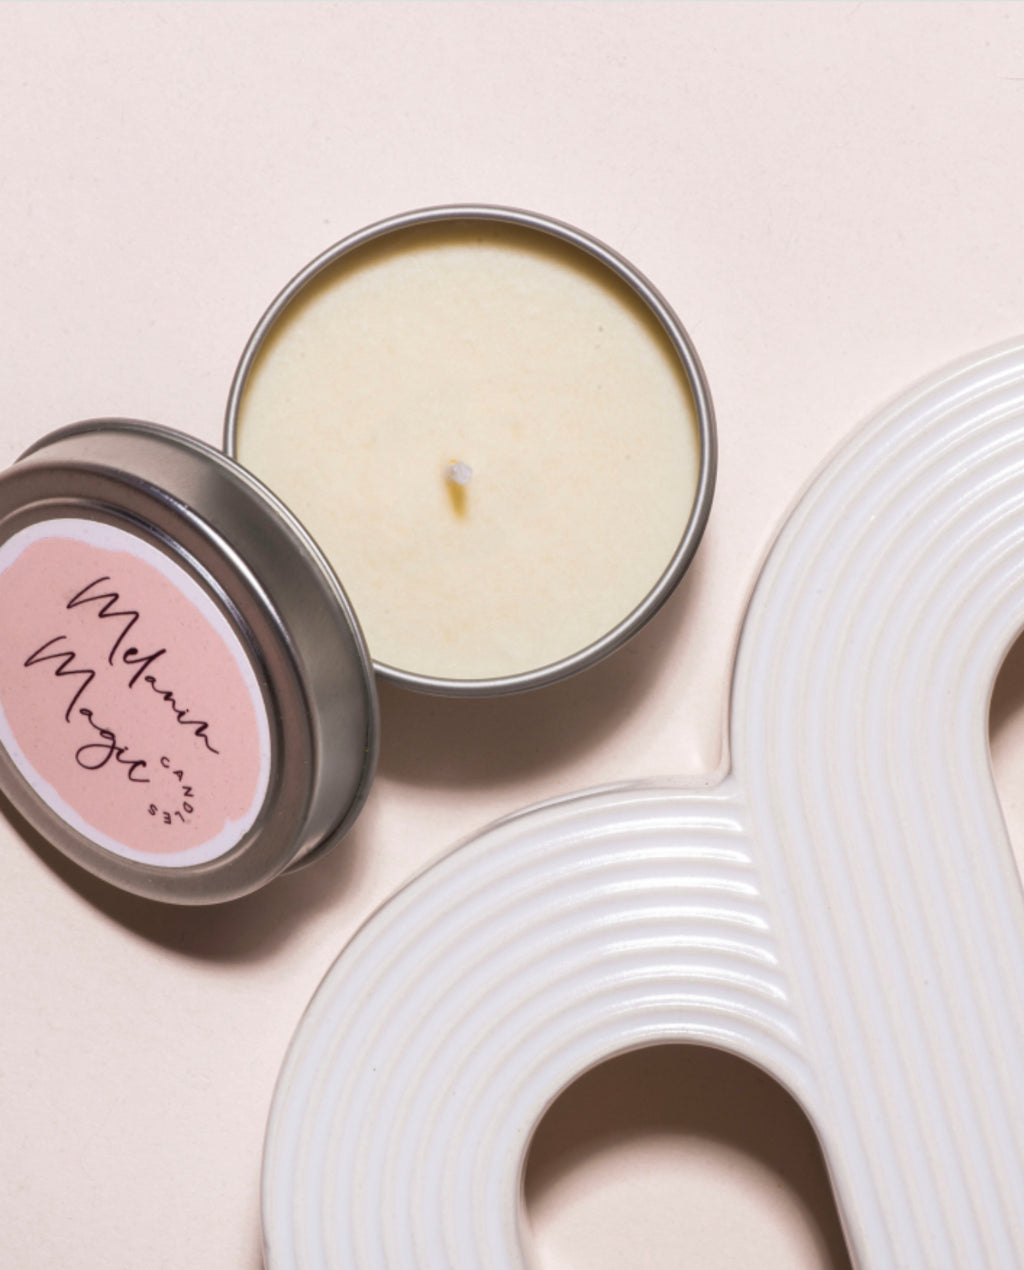 44 Signature Body Oil Candle